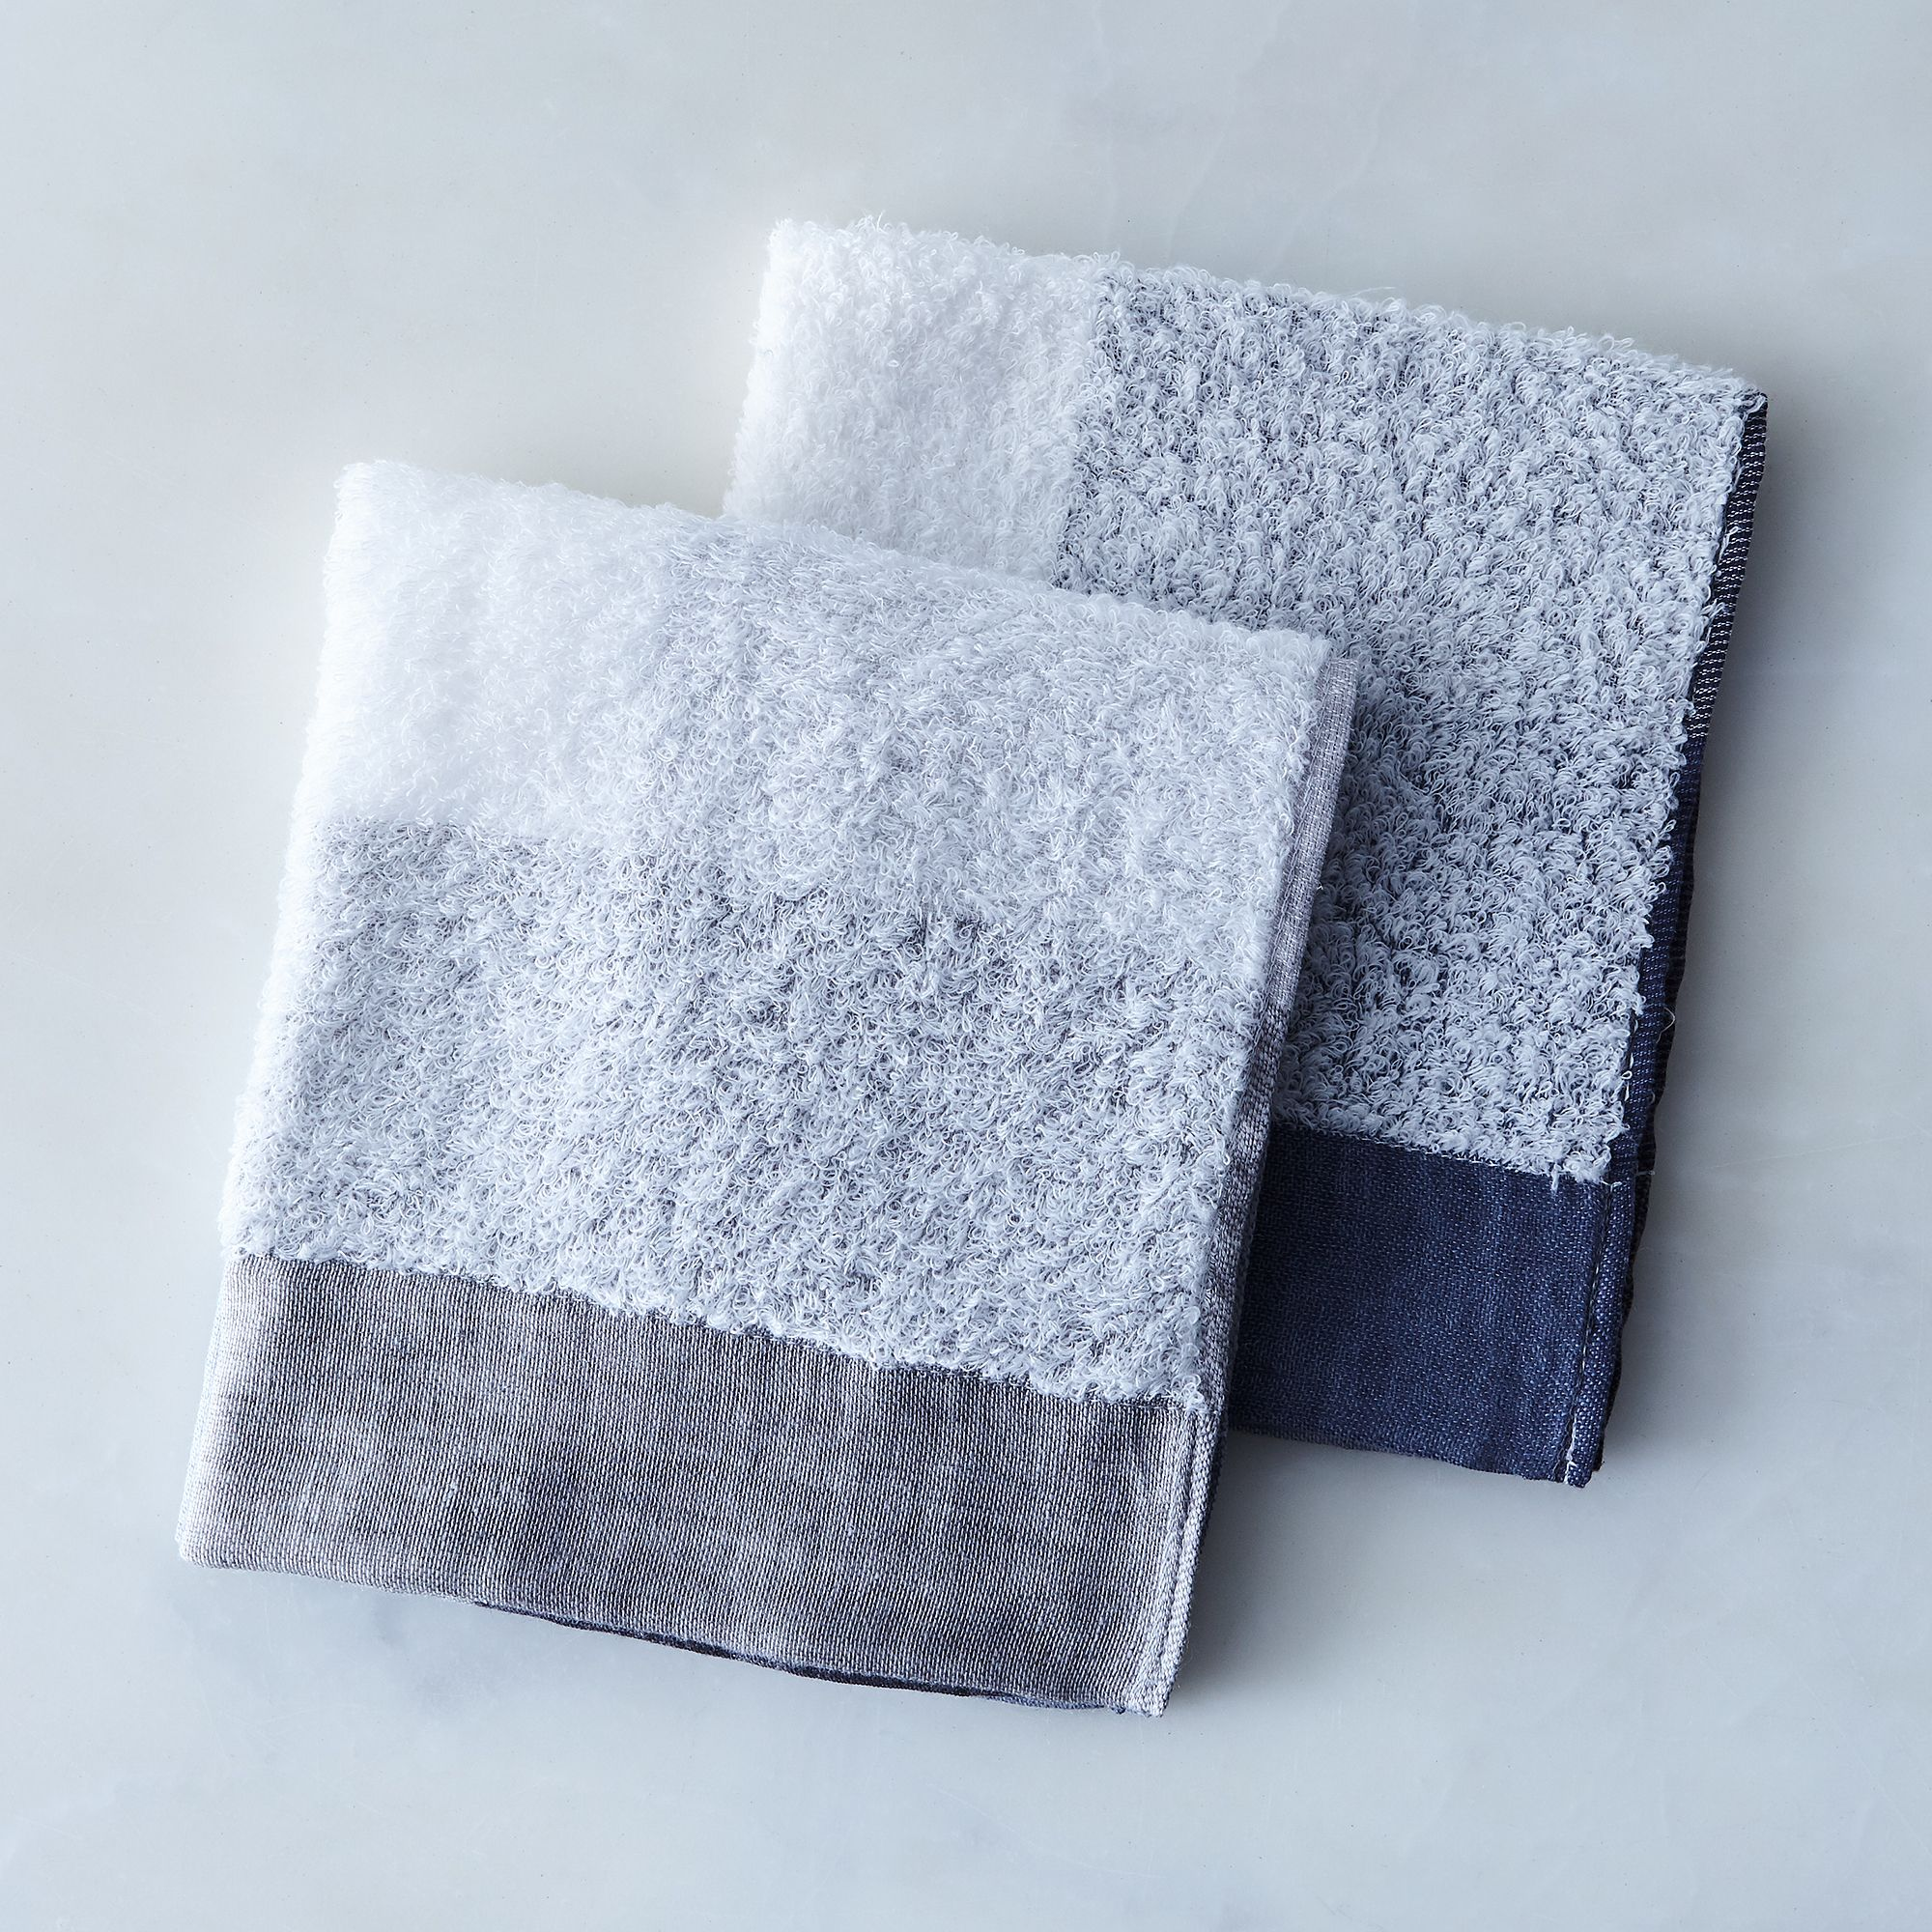 264ee7e1 701f 4b46 8d03 116c25203781  2017 0404 morihata international linen and cotton blend colorblock towels grey washcloth set of 2 rocky luten 0455